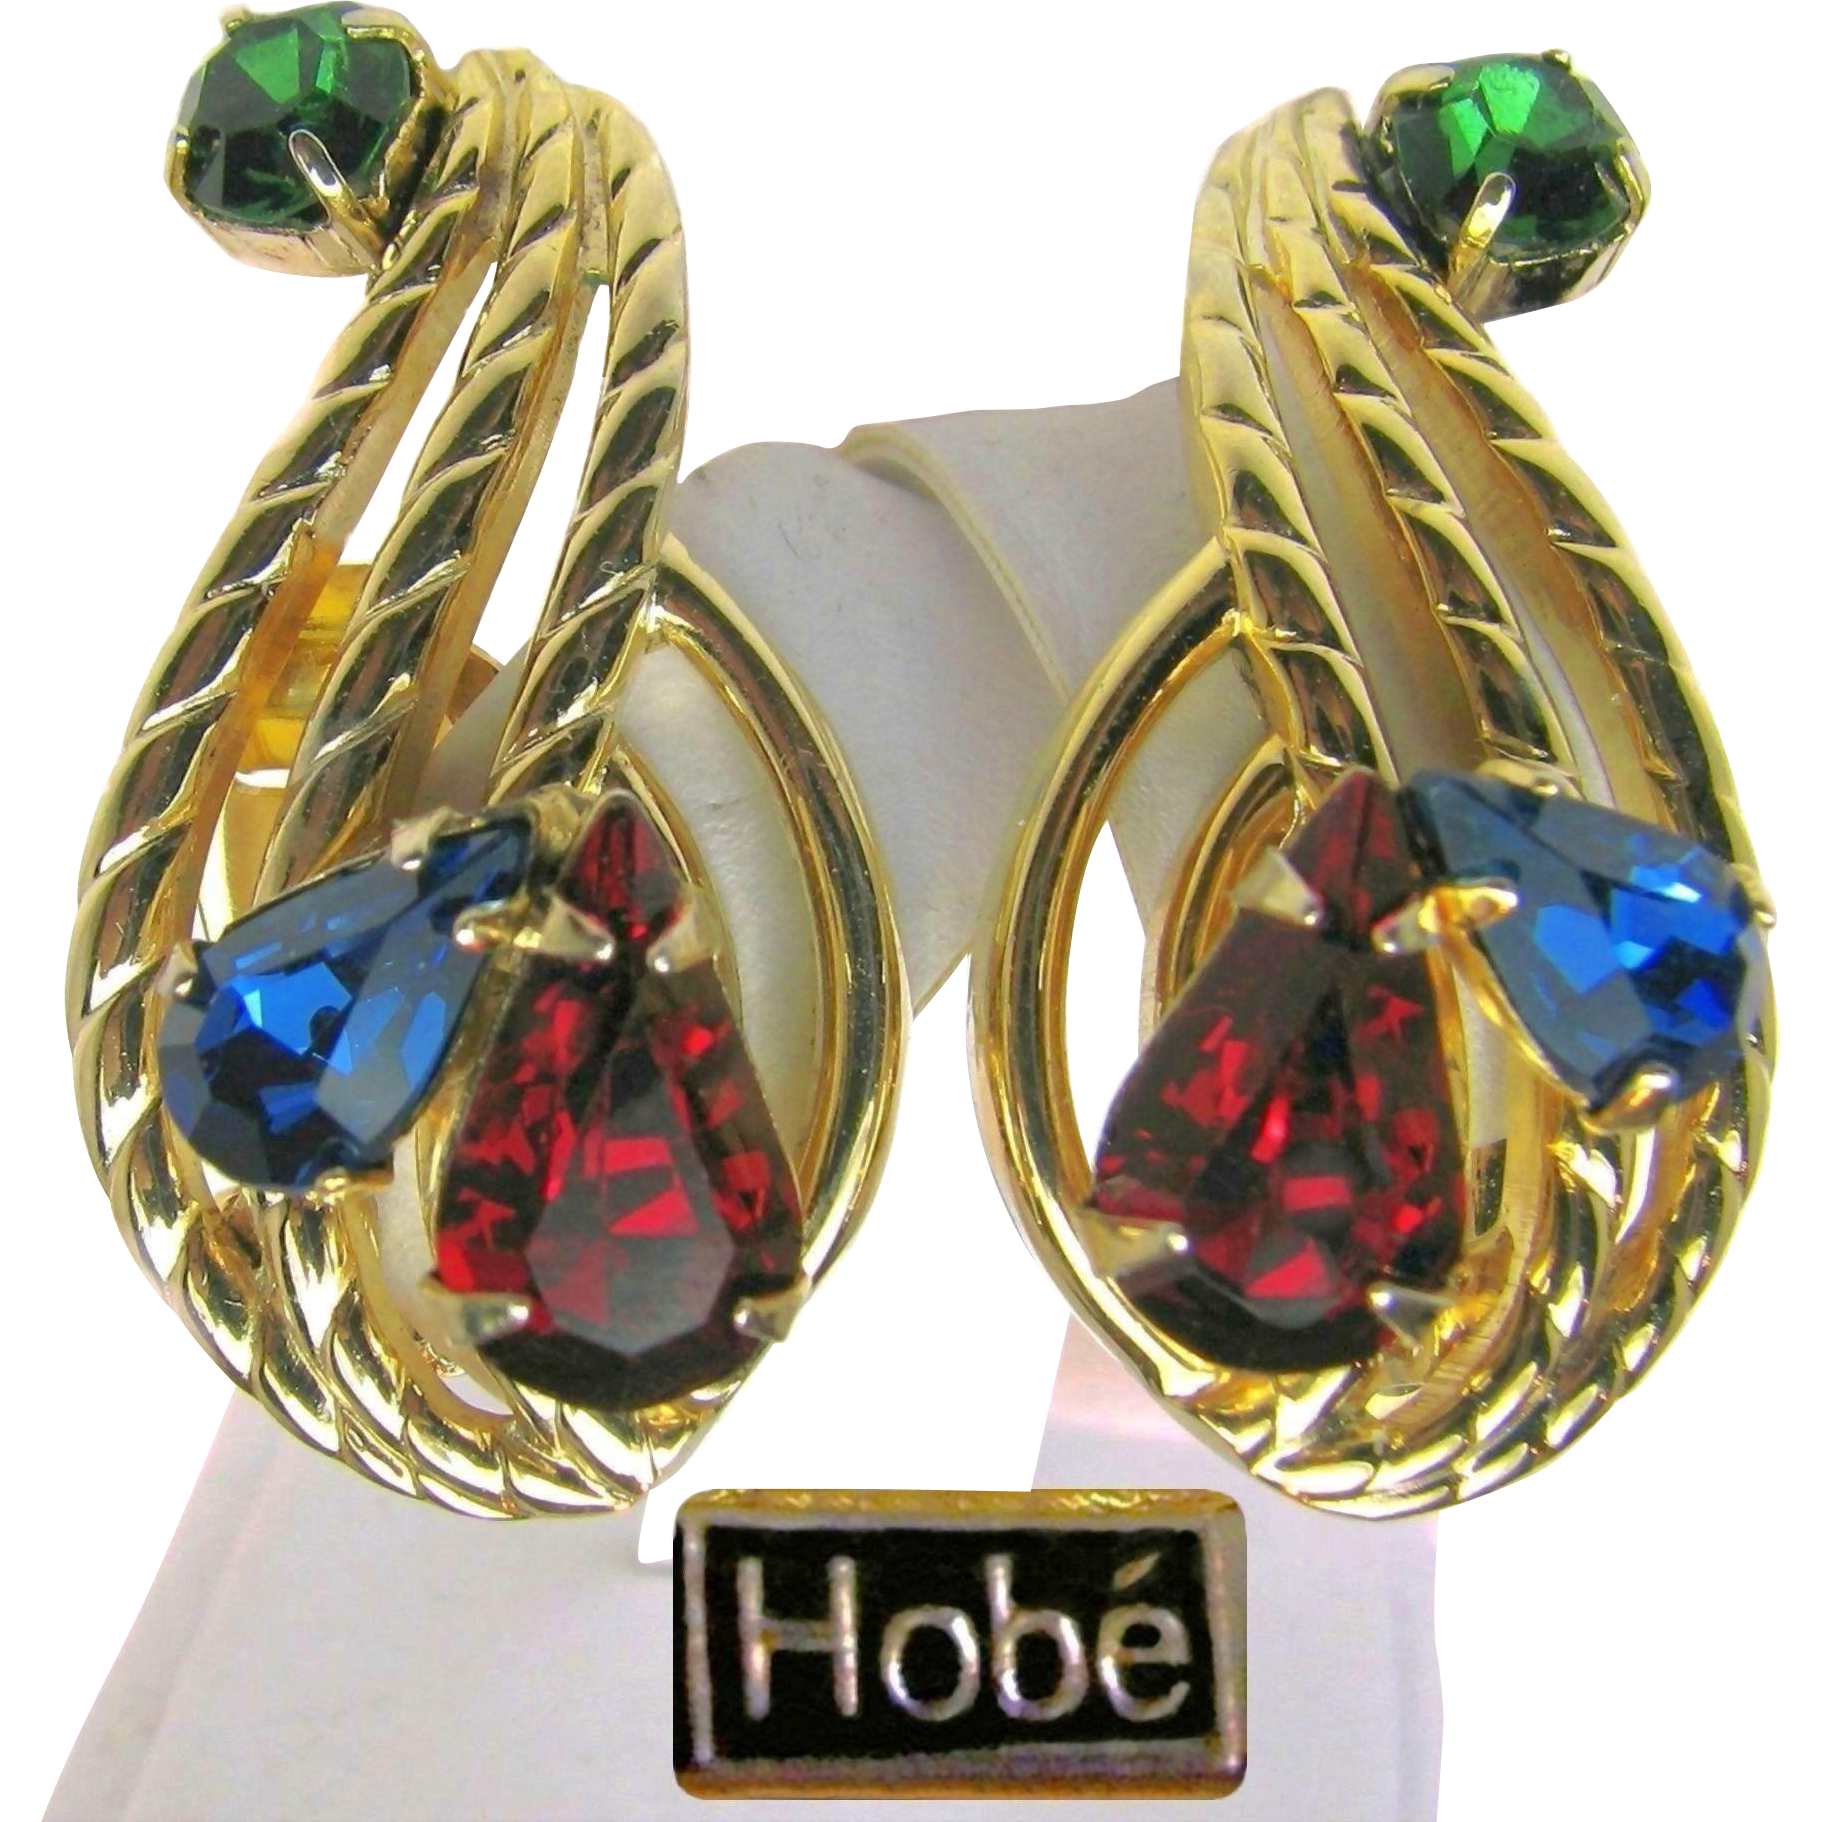 Gorgeous Hobé Jewel-tone Rhinestone CLIMBER Earrings - Pat. Pend. circa early 1950's